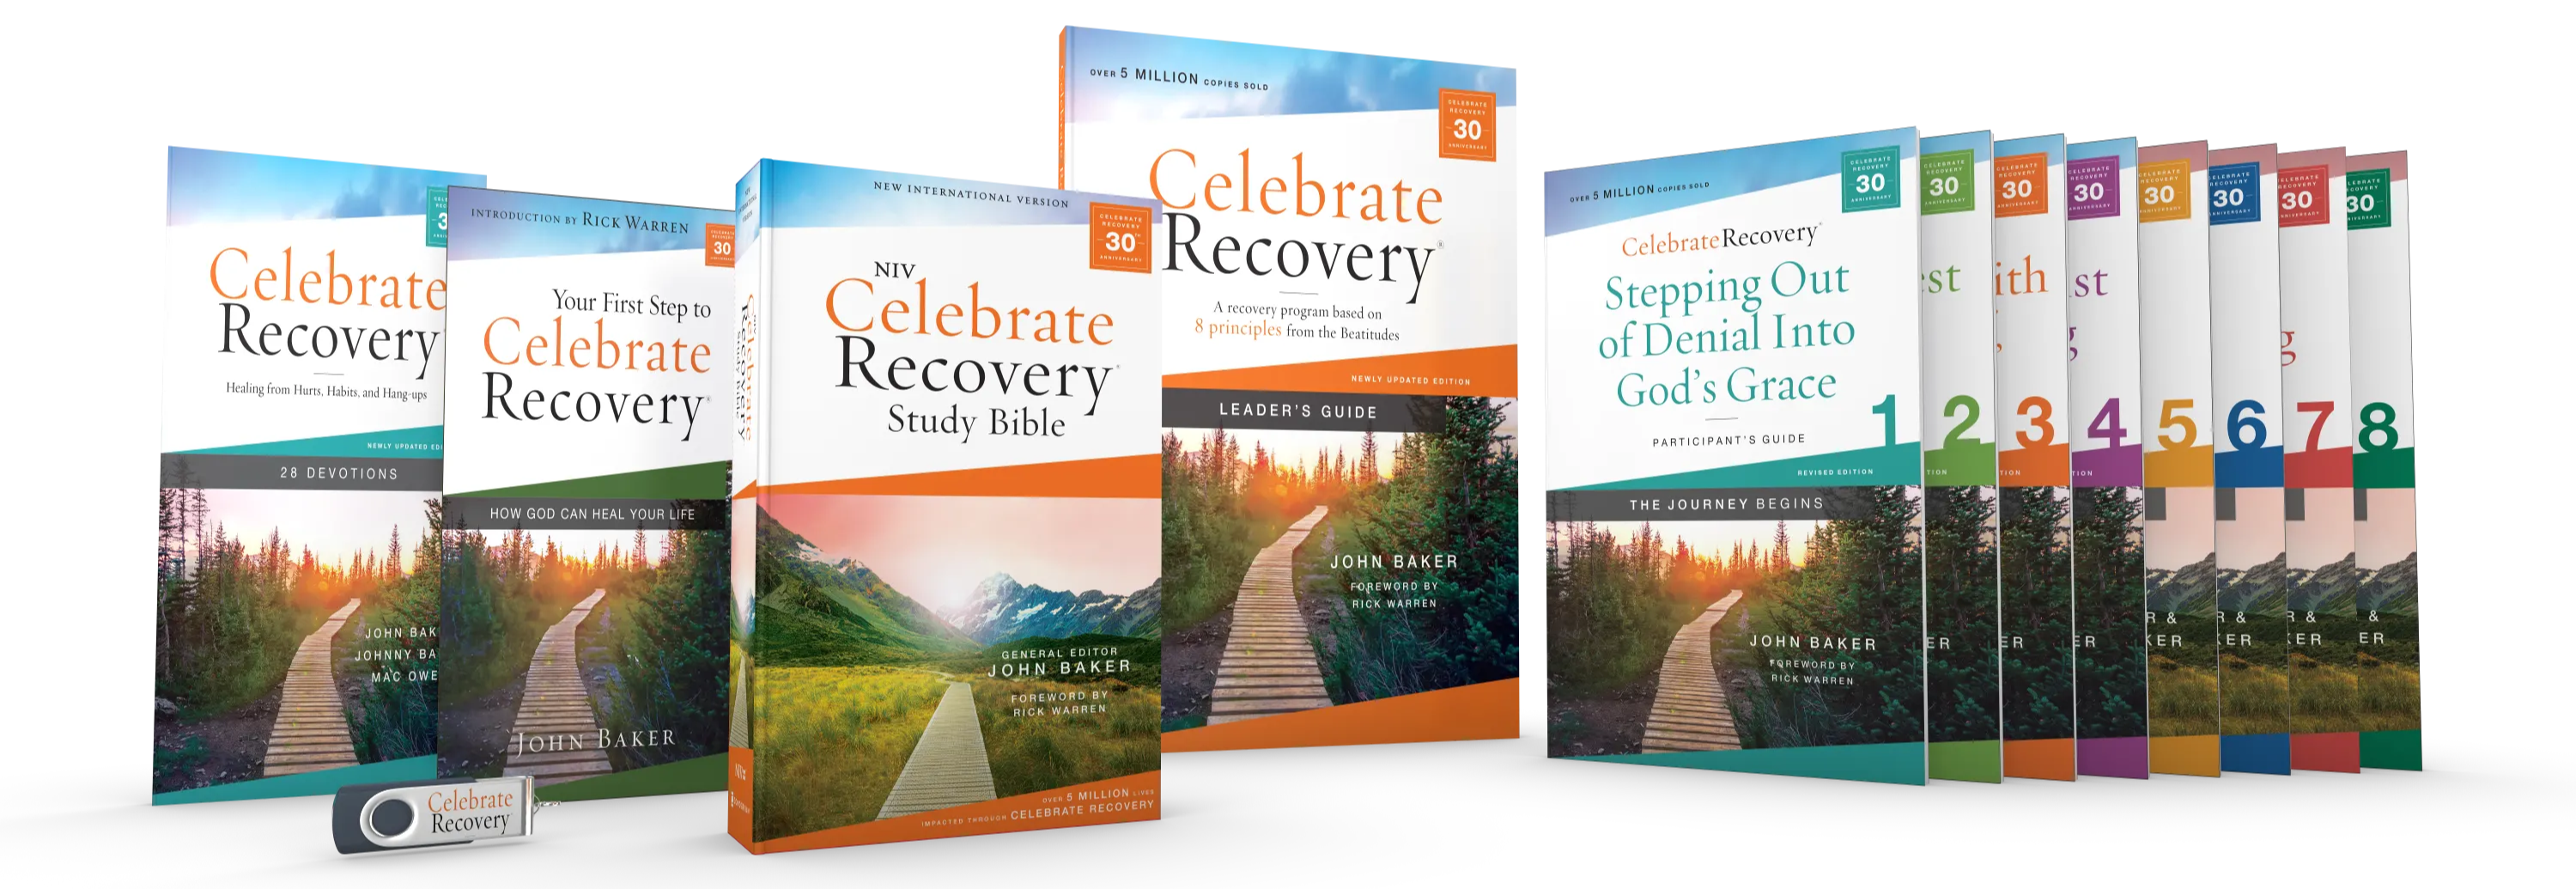 Celebrate Recovery offers a Christ-centered 12-step program based on the Beatitudes to help people overcome their hurts, habits, and hang-ups